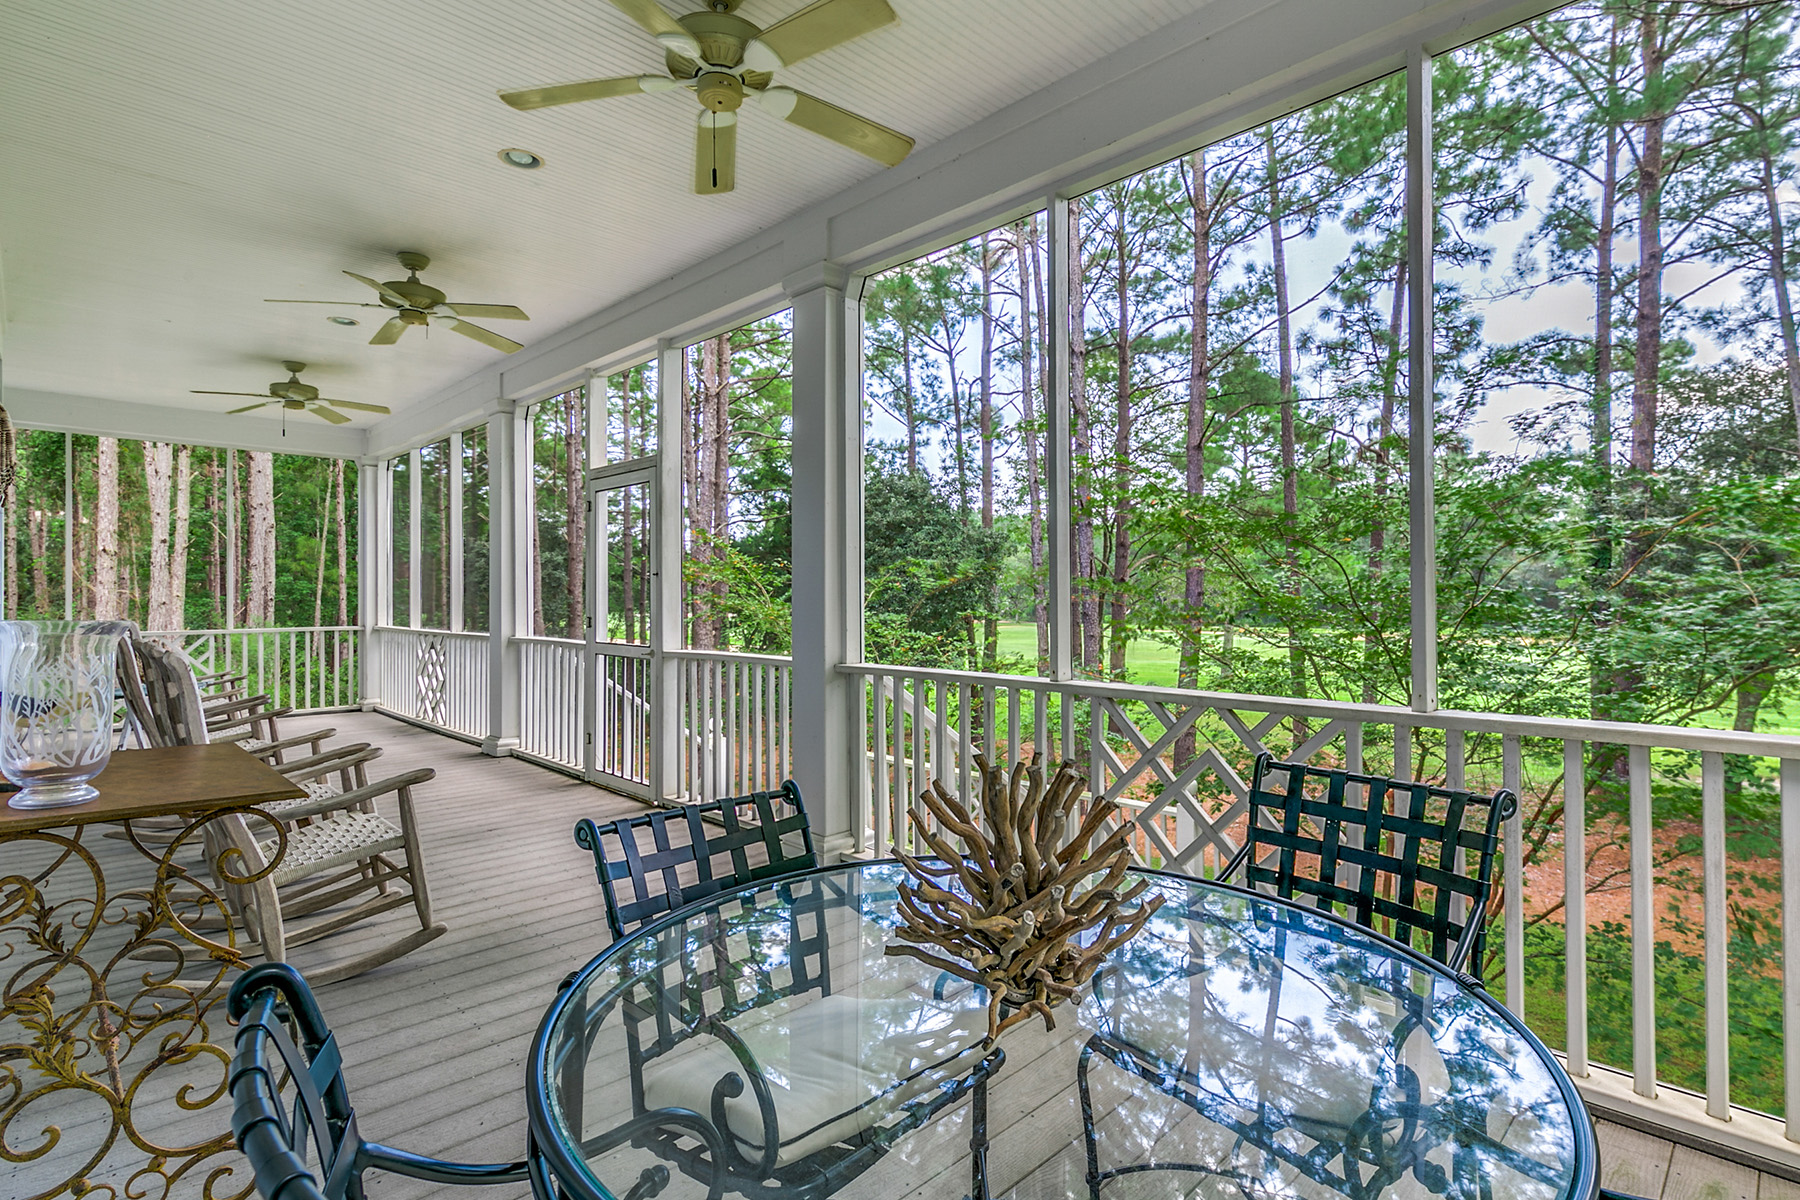 Additional photo for property listing at 2372 Wallace Pate Dr., Georgetown, SC 29440 2372  Wallace Pate Dr. Georgetown, South Carolina 29440 United States